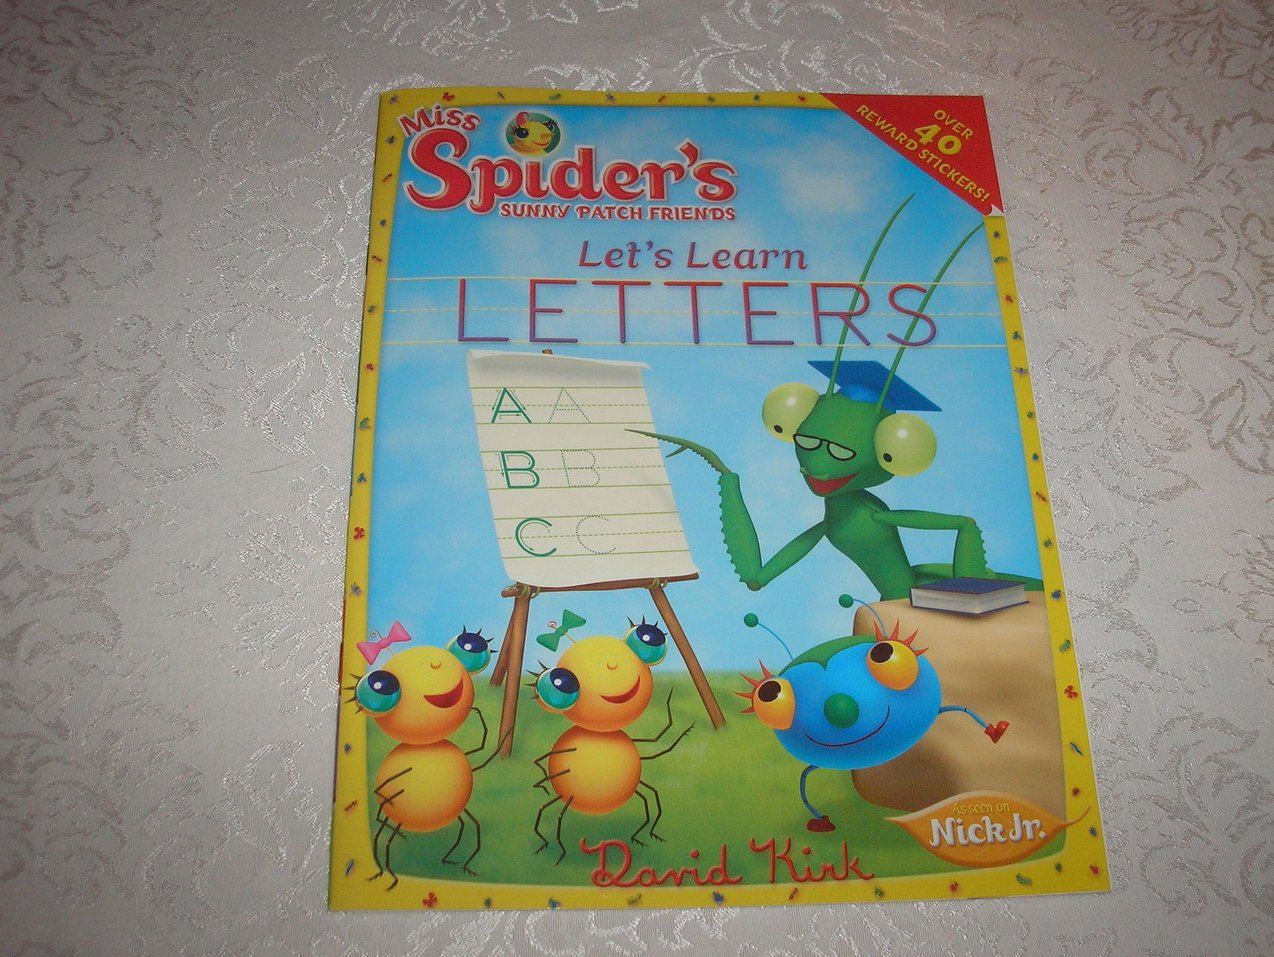 Miss Spider's Sunny Patch Friends Let's Learn Letters brand new activity book